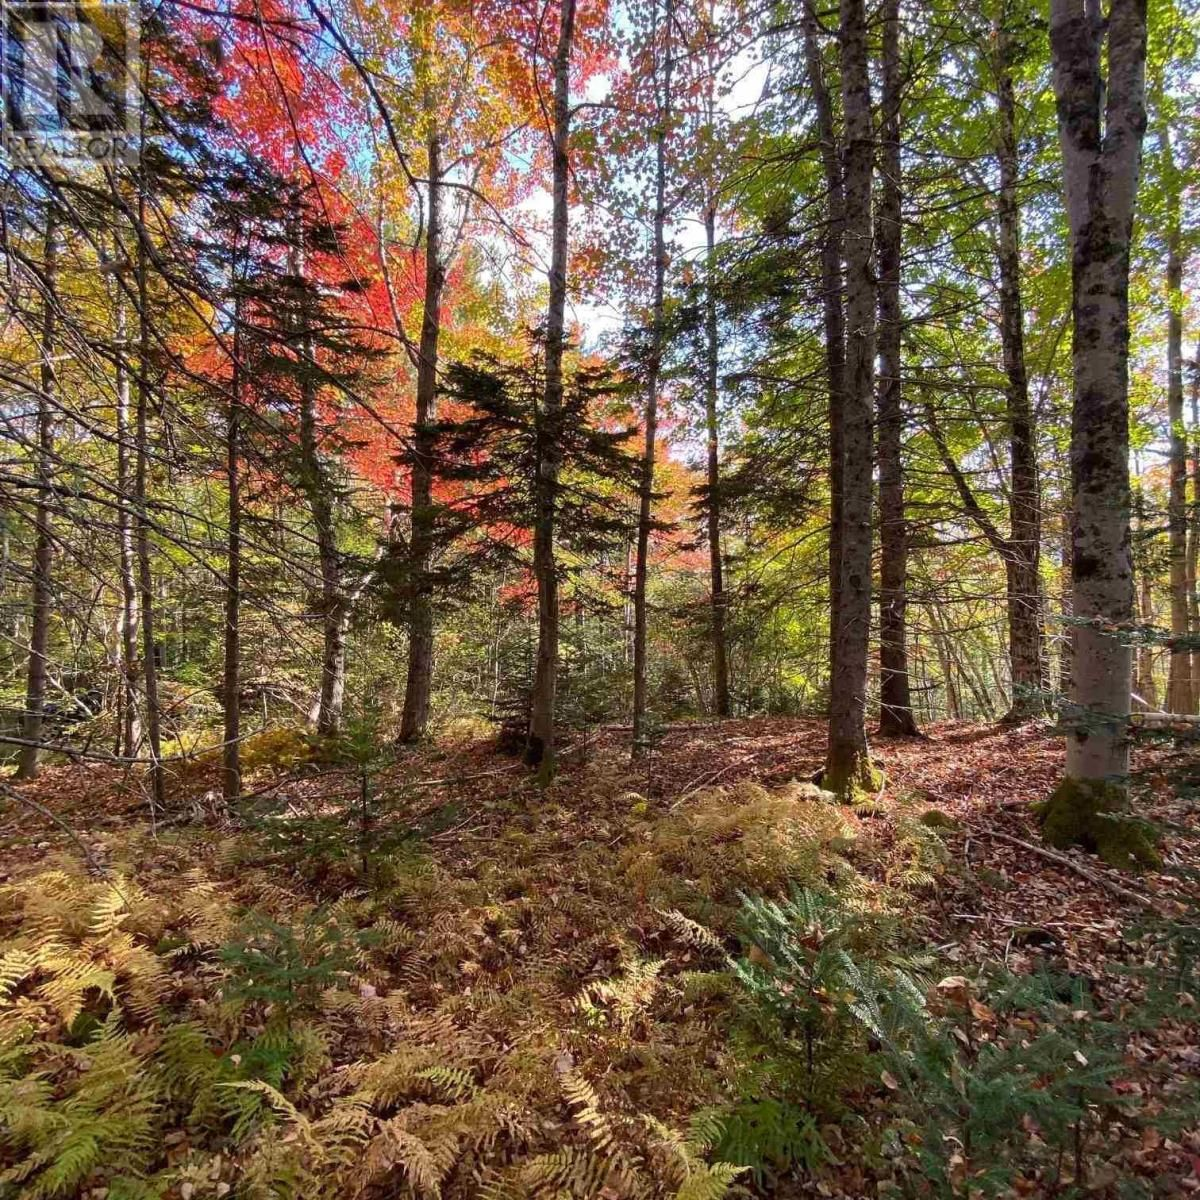 Main Photo: Acreage Middle New Cornwall in Middle New Cornwall: Vacant Land for sale : MLS®# 202125307